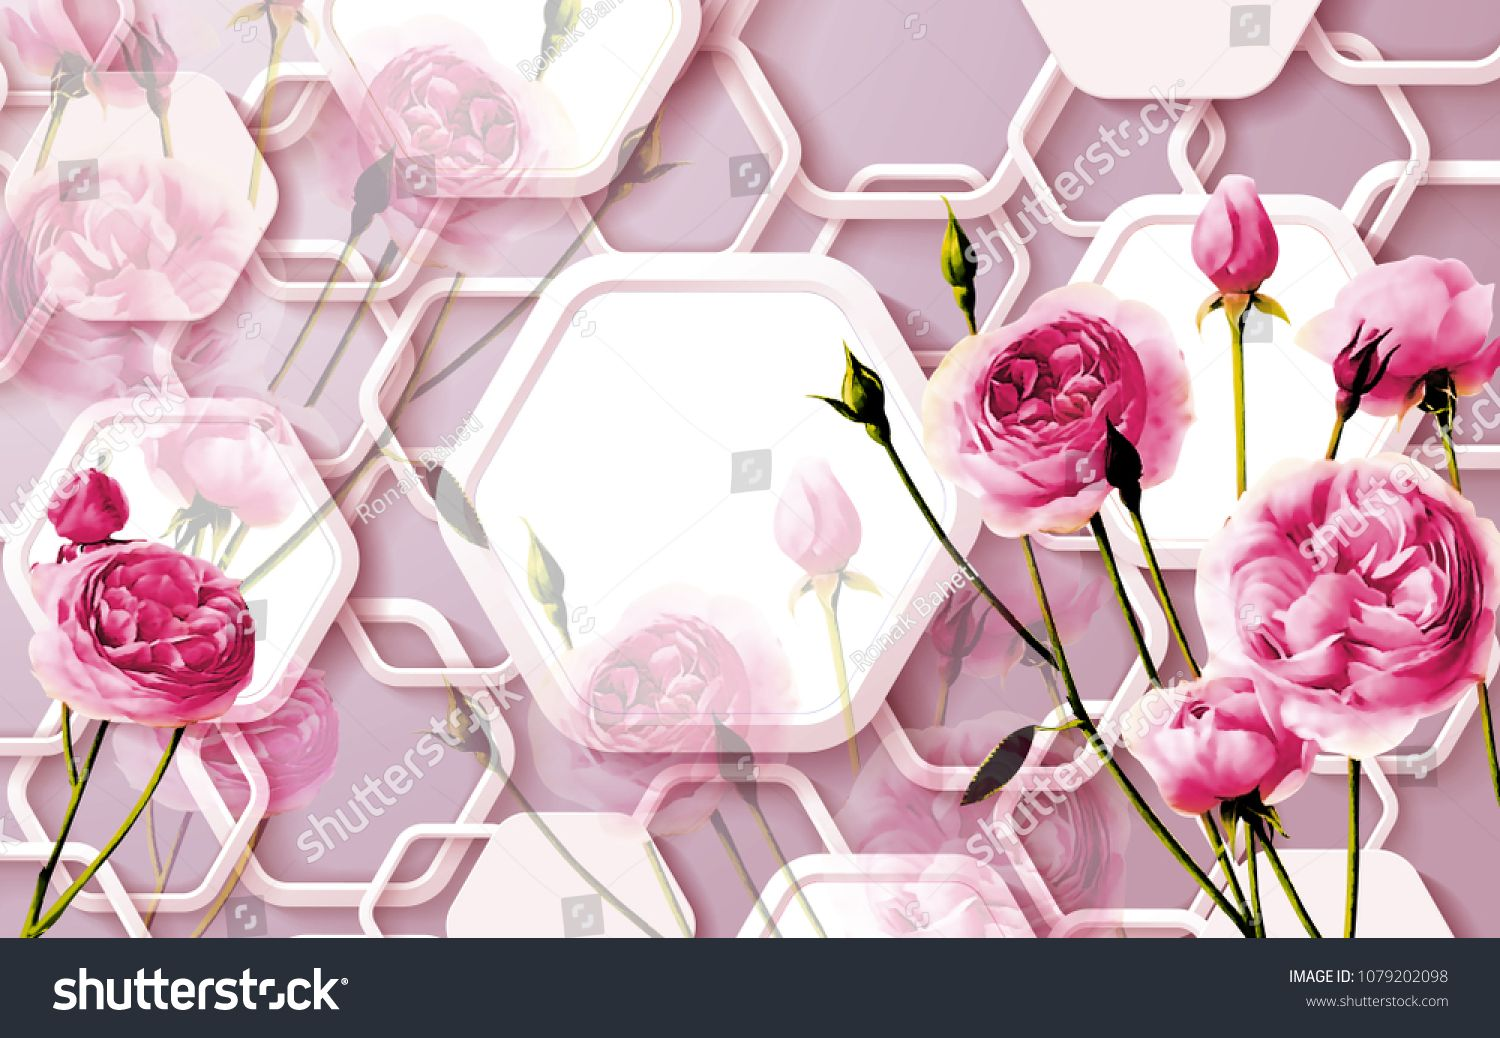 3d Floral Abstract Wallpaper For Walls 3d Rendering Sponsored